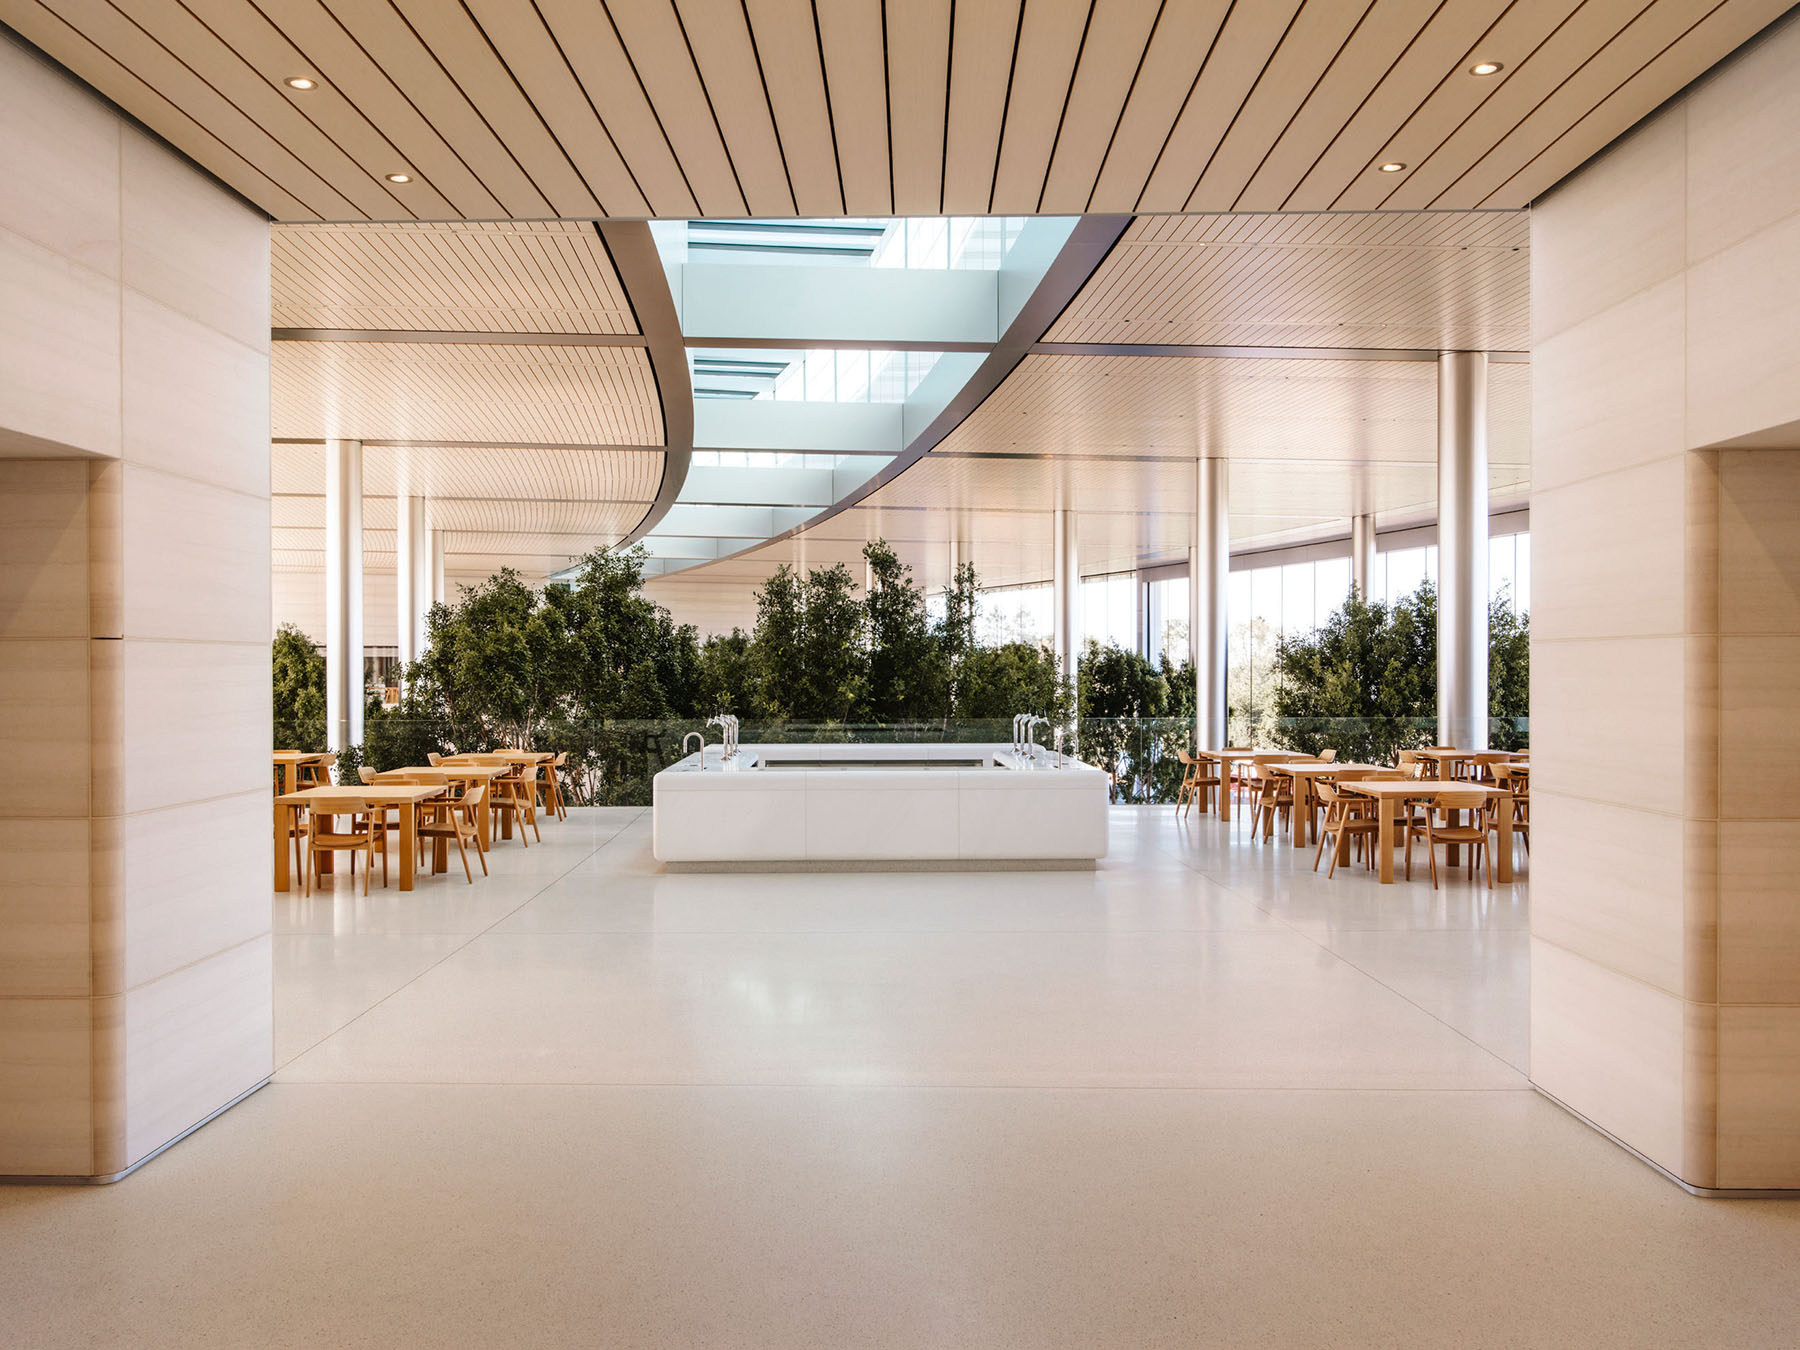 Terrace in the main café at Apple's Cupertino headquarters with Naoto Fukasawa-designed chairs and Arco benches